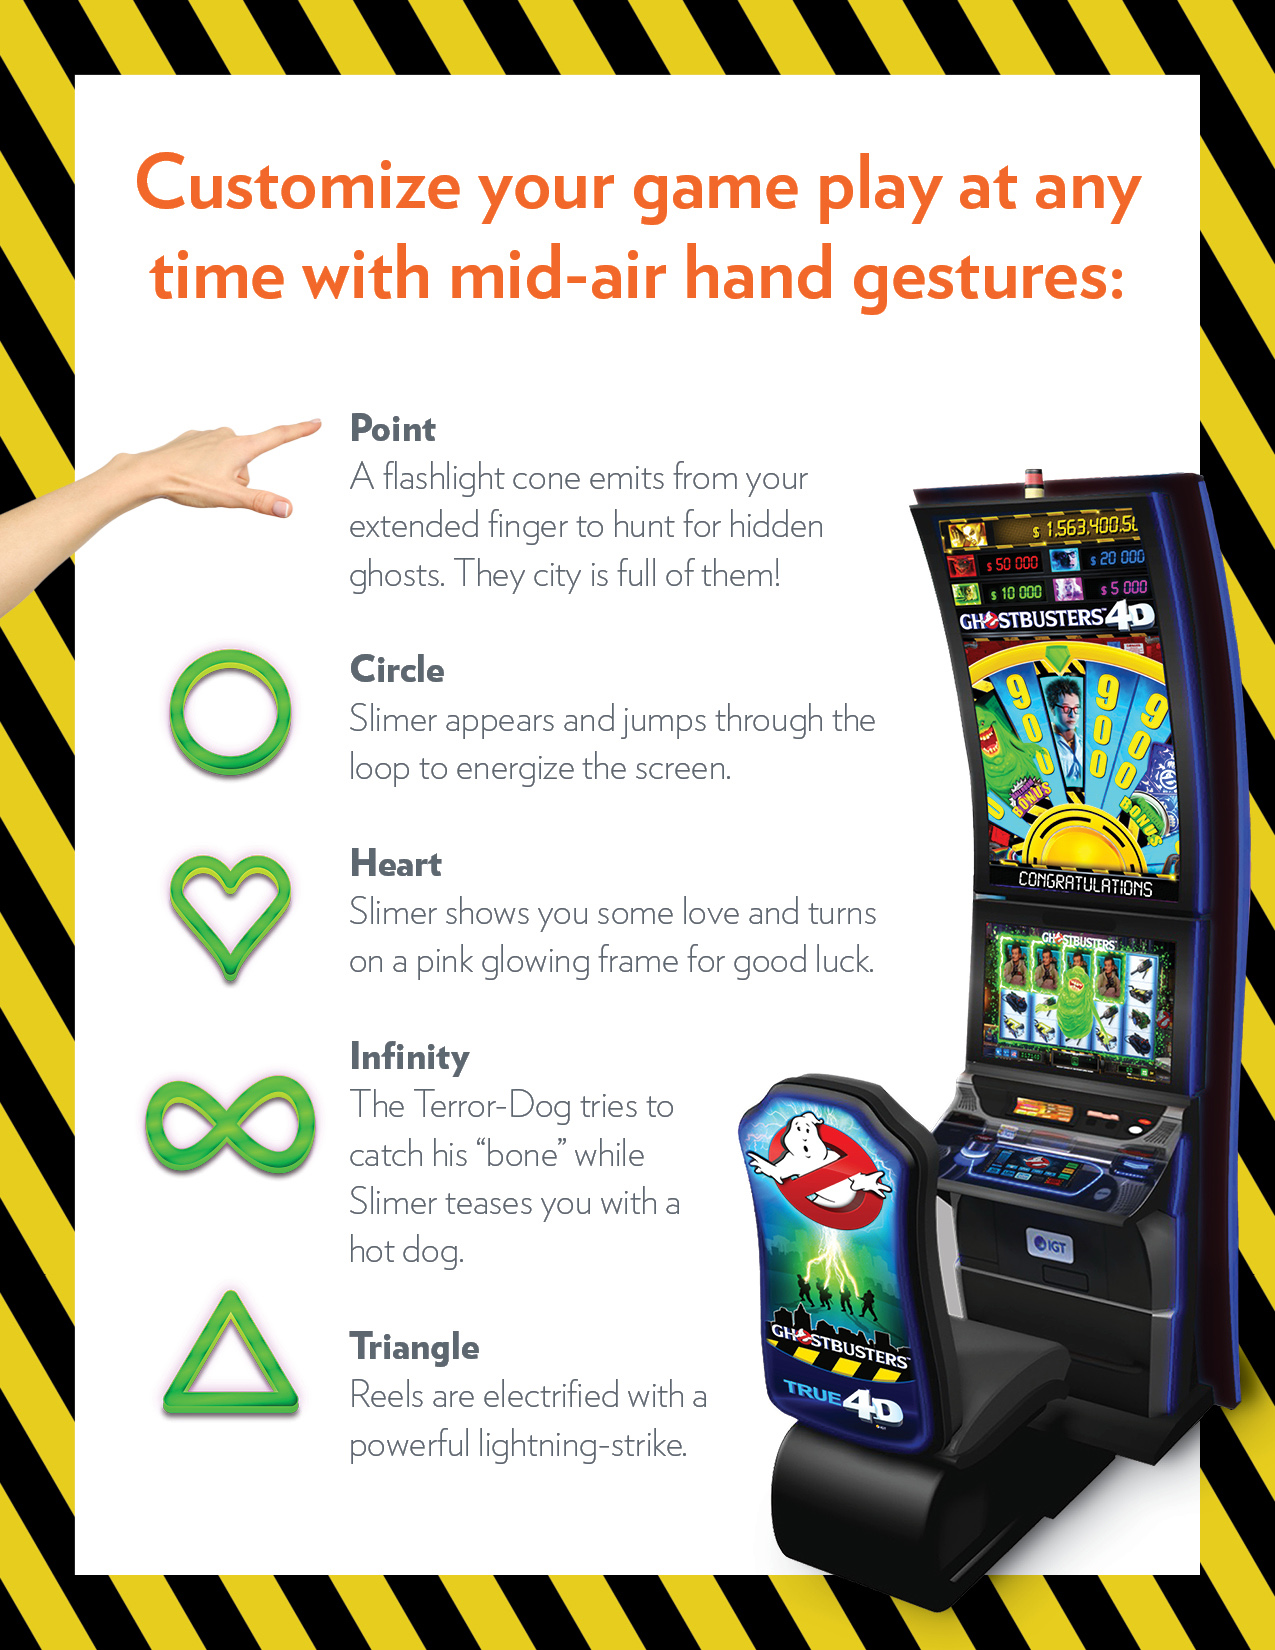 Draw a variety of shapes in mid-air any time while playing Ghostbusters 4D and be entertained by customized play and paranormal interactions.